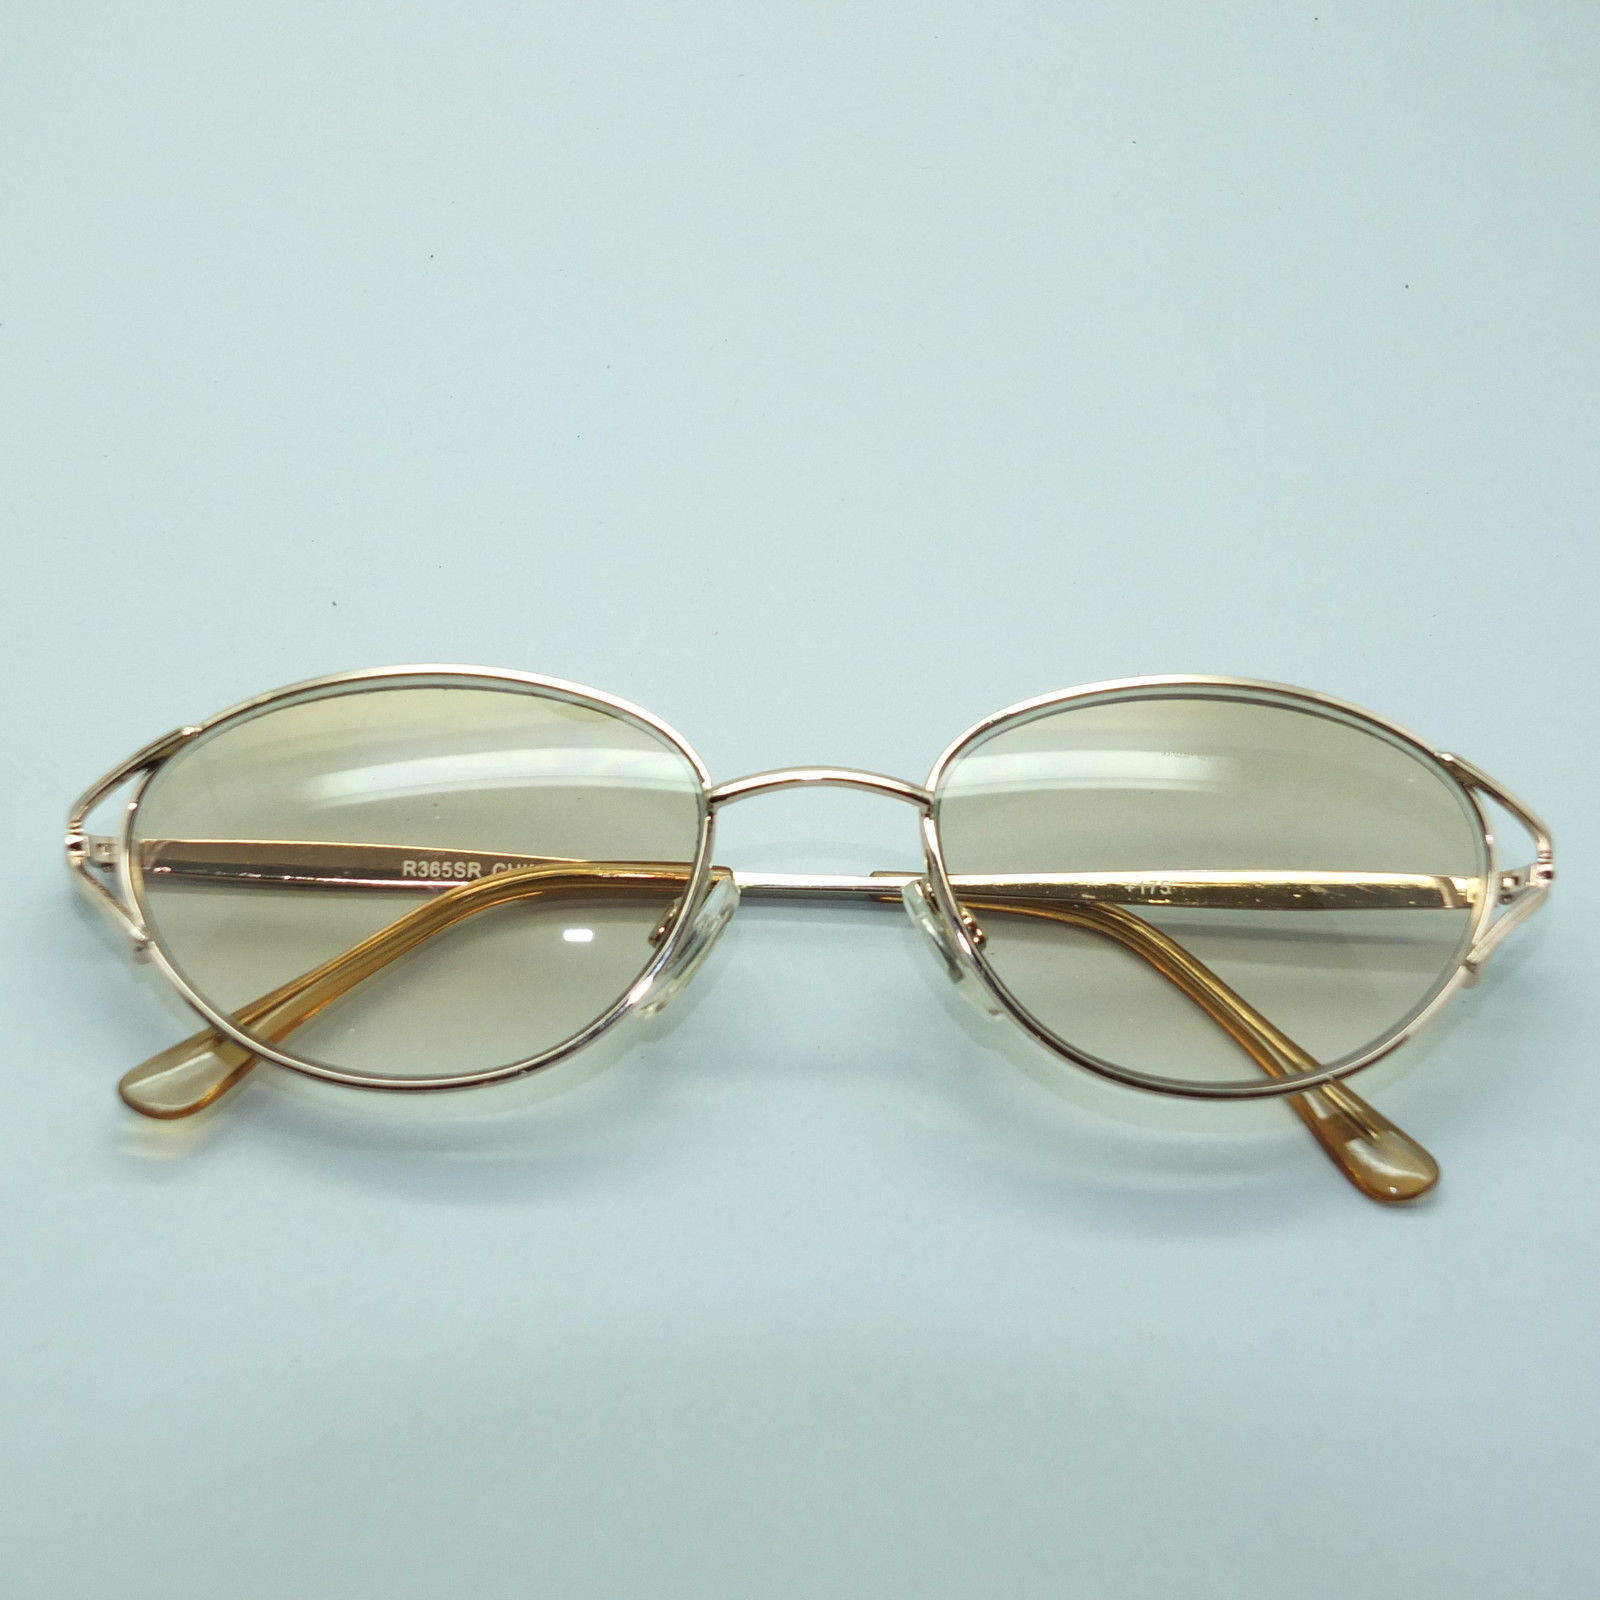 Ladies Gold Frame Glasses : Classic Ladies Oval Pretty Gold Frame Tinted Sunglasses ...